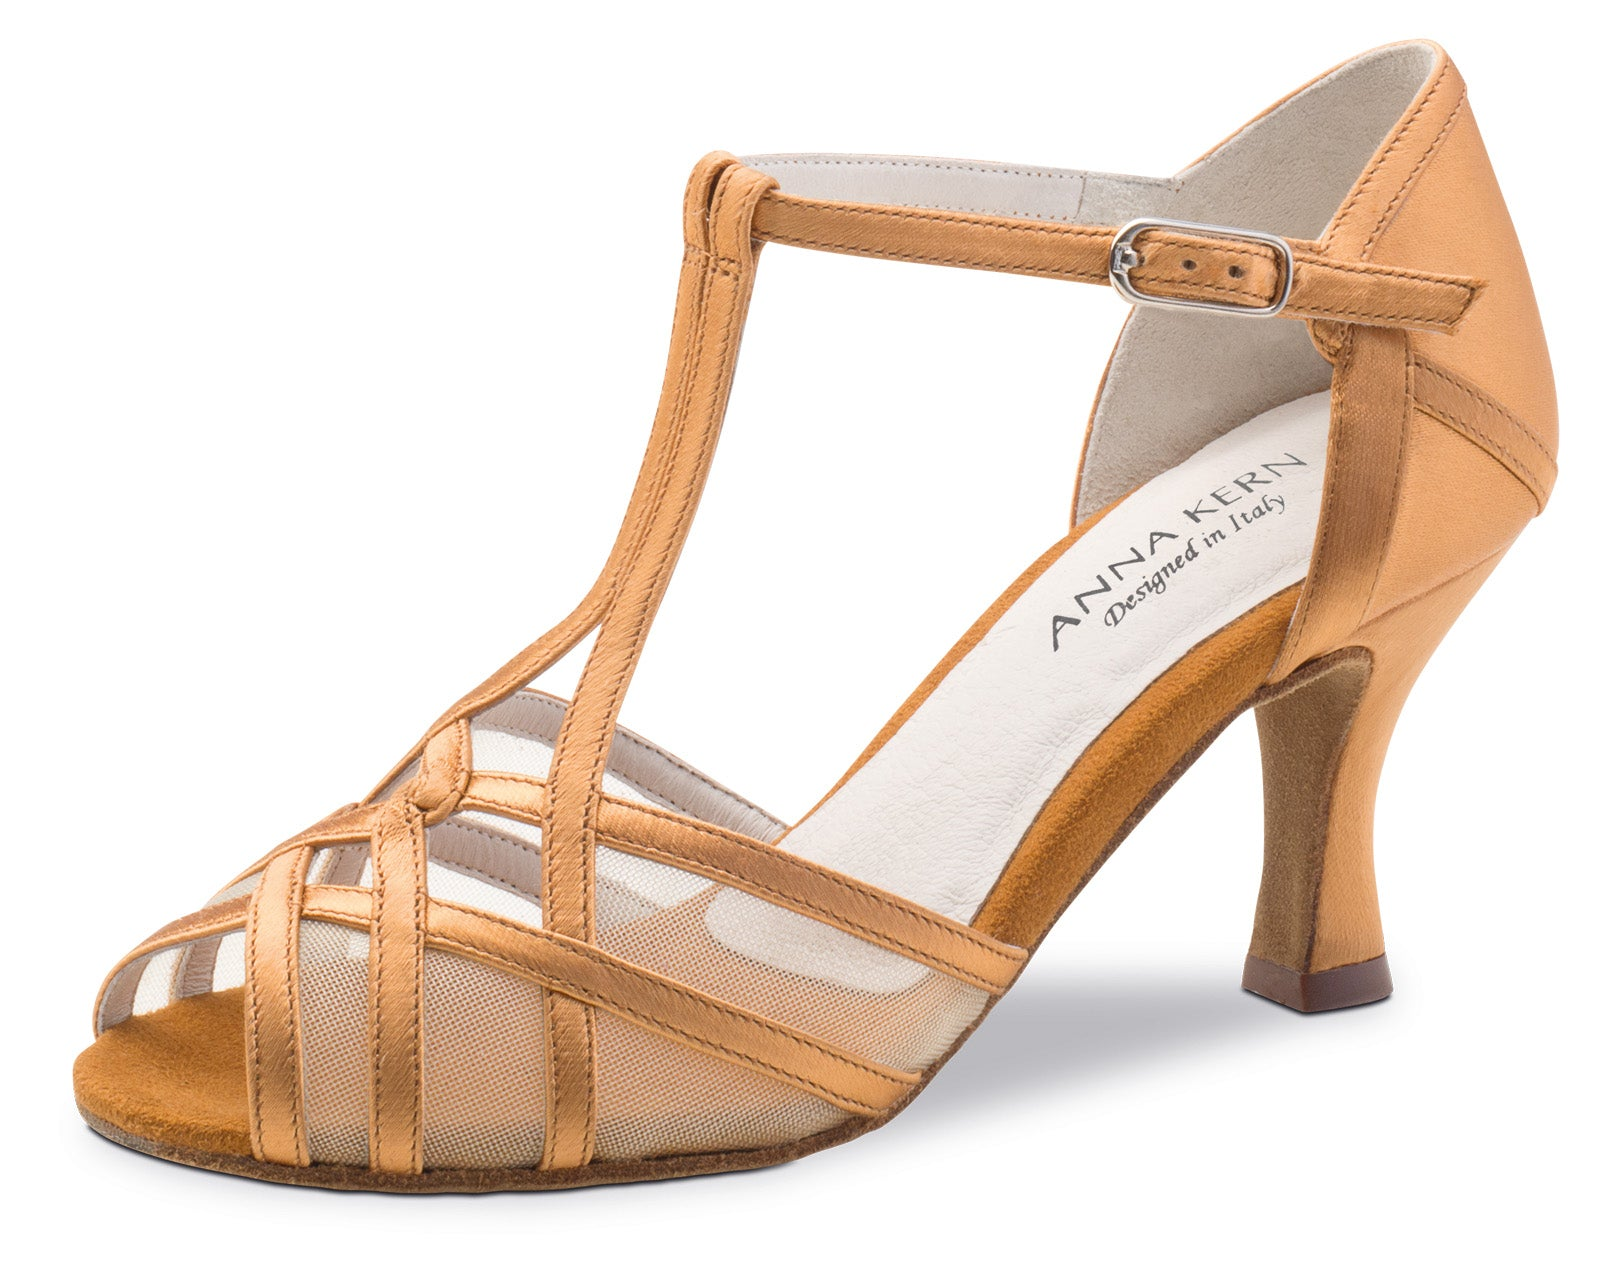 Anna Kern 640-60 satin sandal with mesh